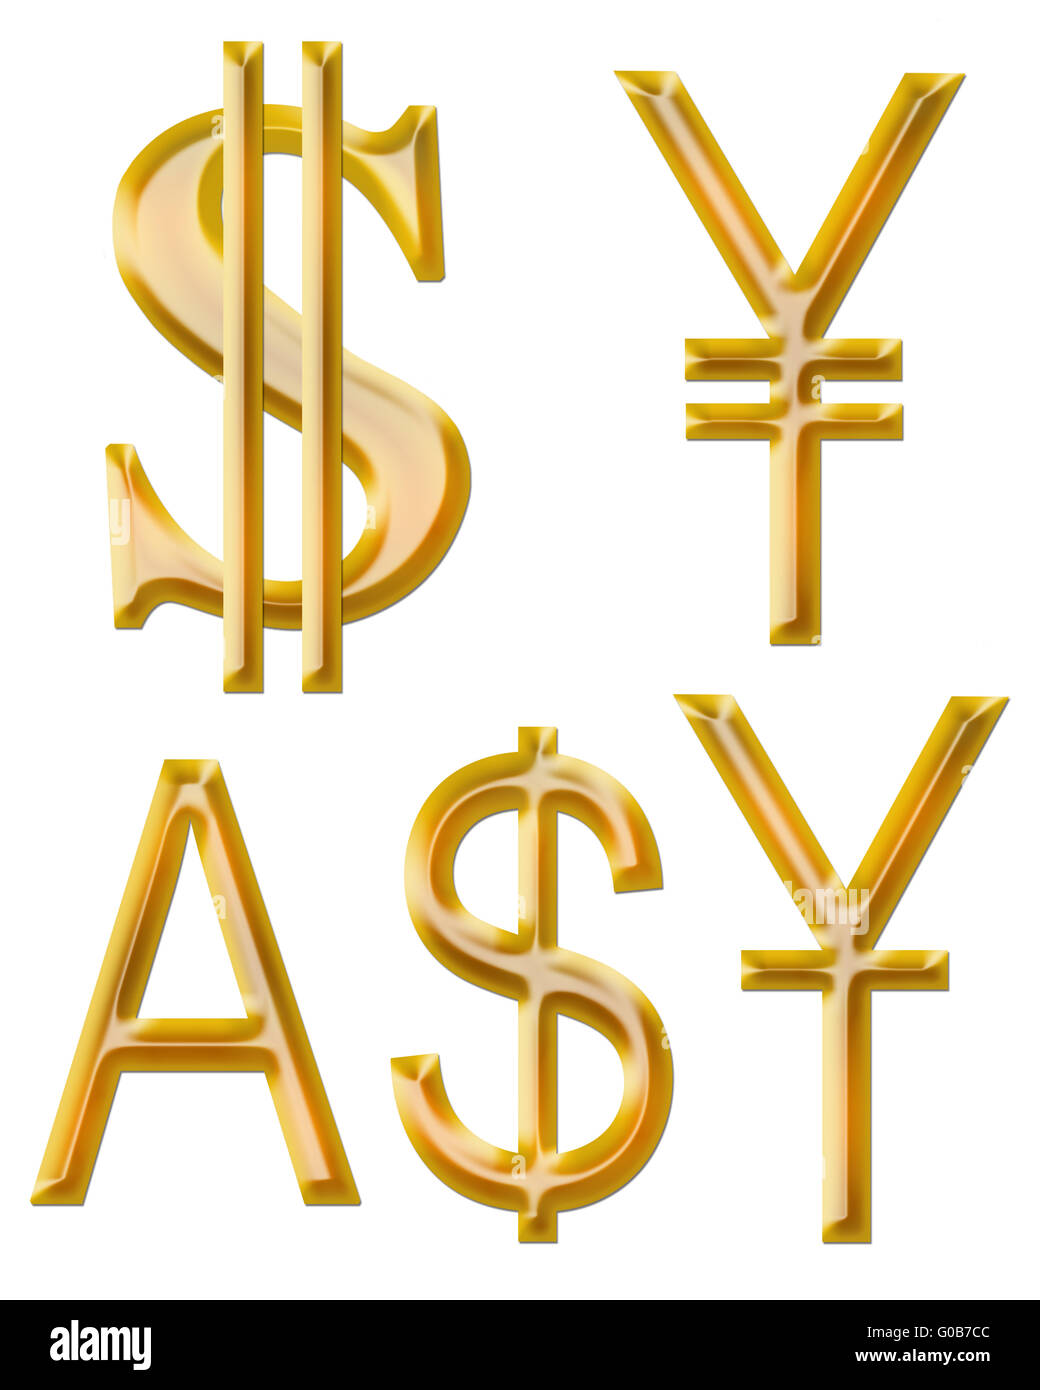 signs of currencies: yuan, dollar, yen and Austral - Stock Image